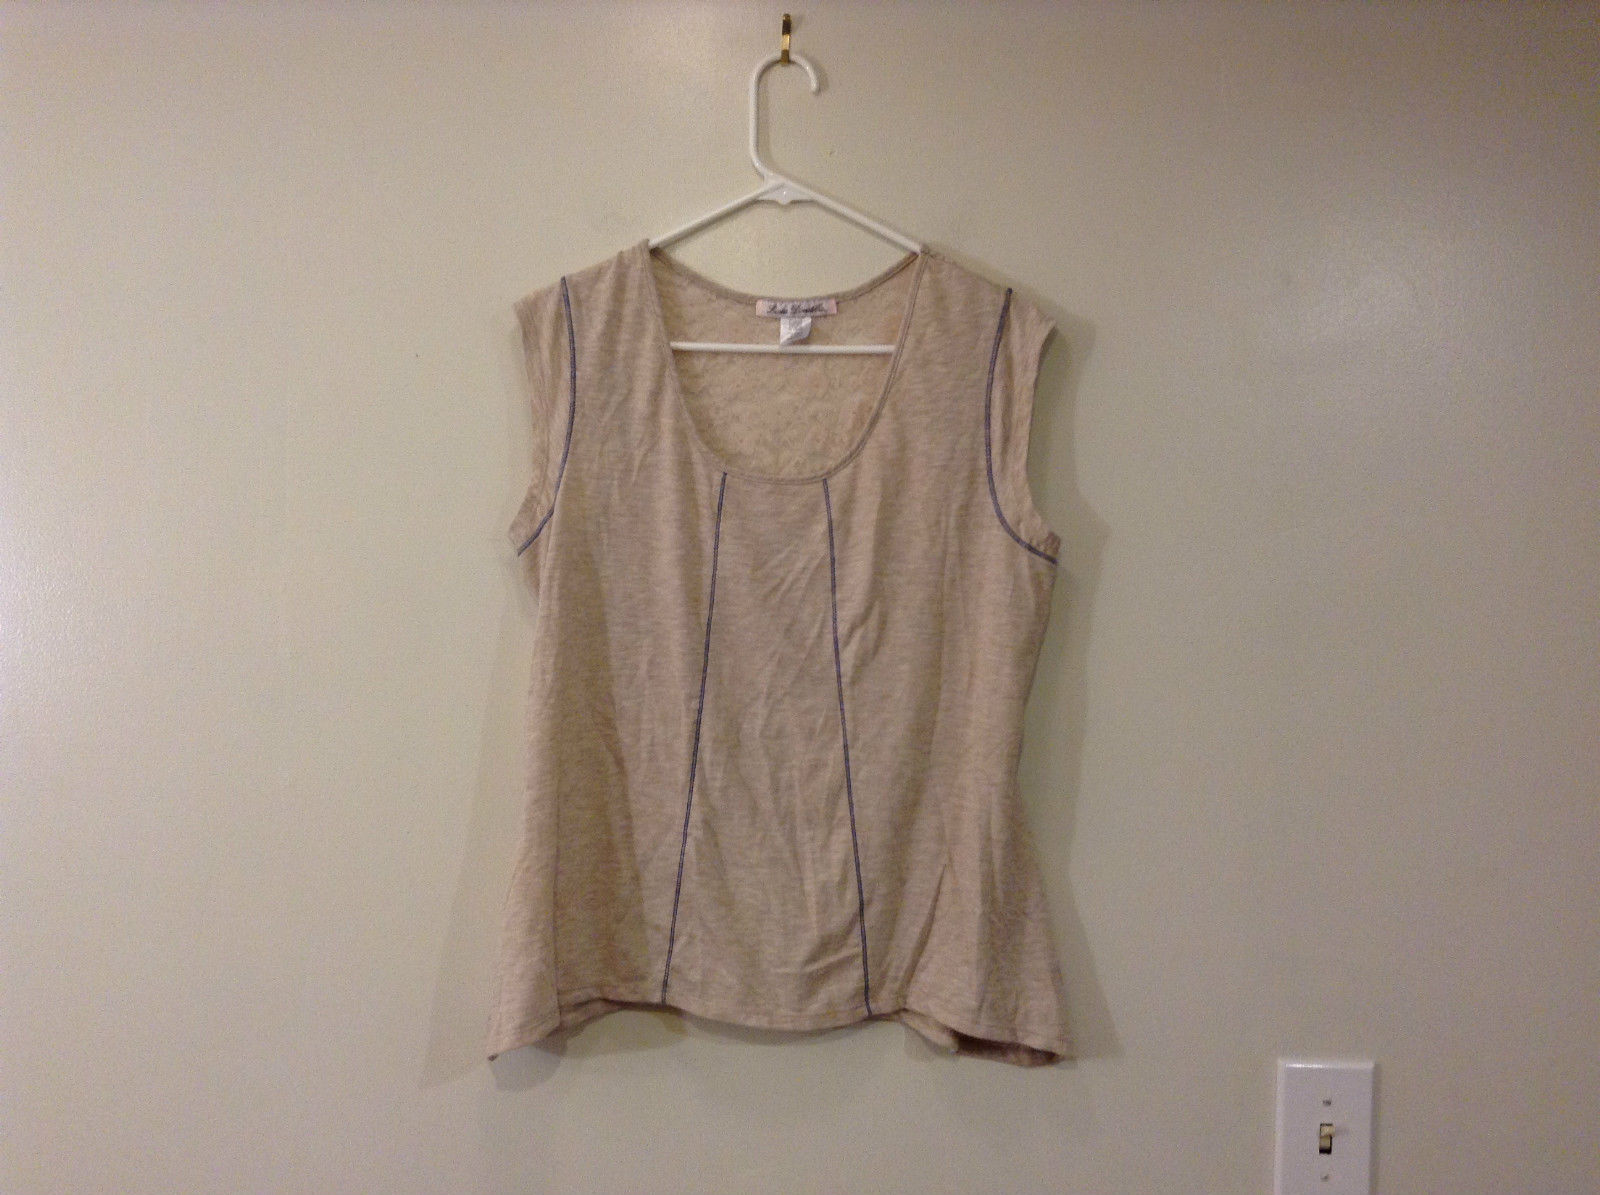 Beige Linea Donatella Size Large Sleeveless Top Uneven Bottom Lace on Back